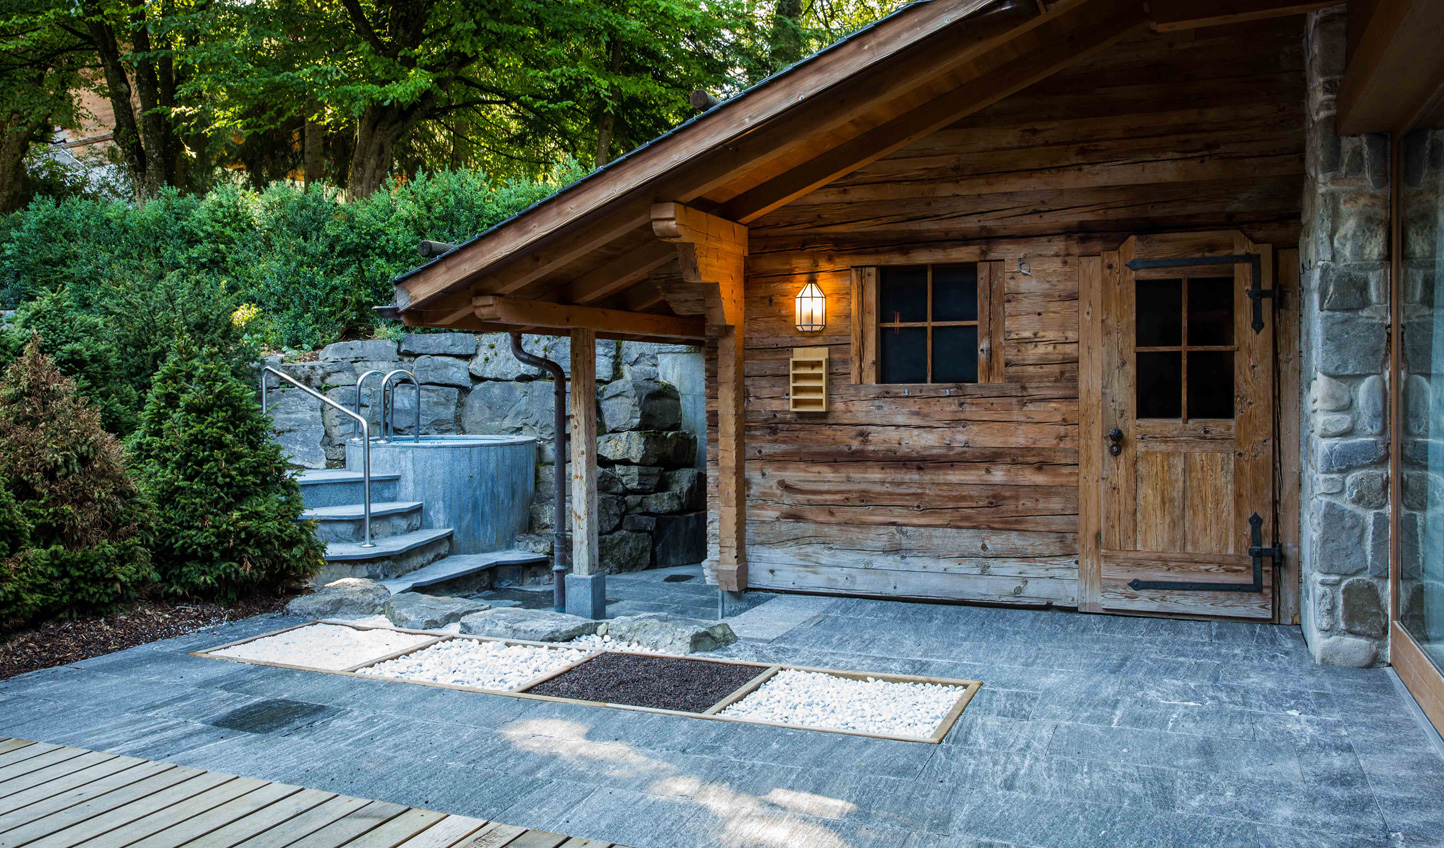 Experience authentic Alpine treatments to ease body and soul